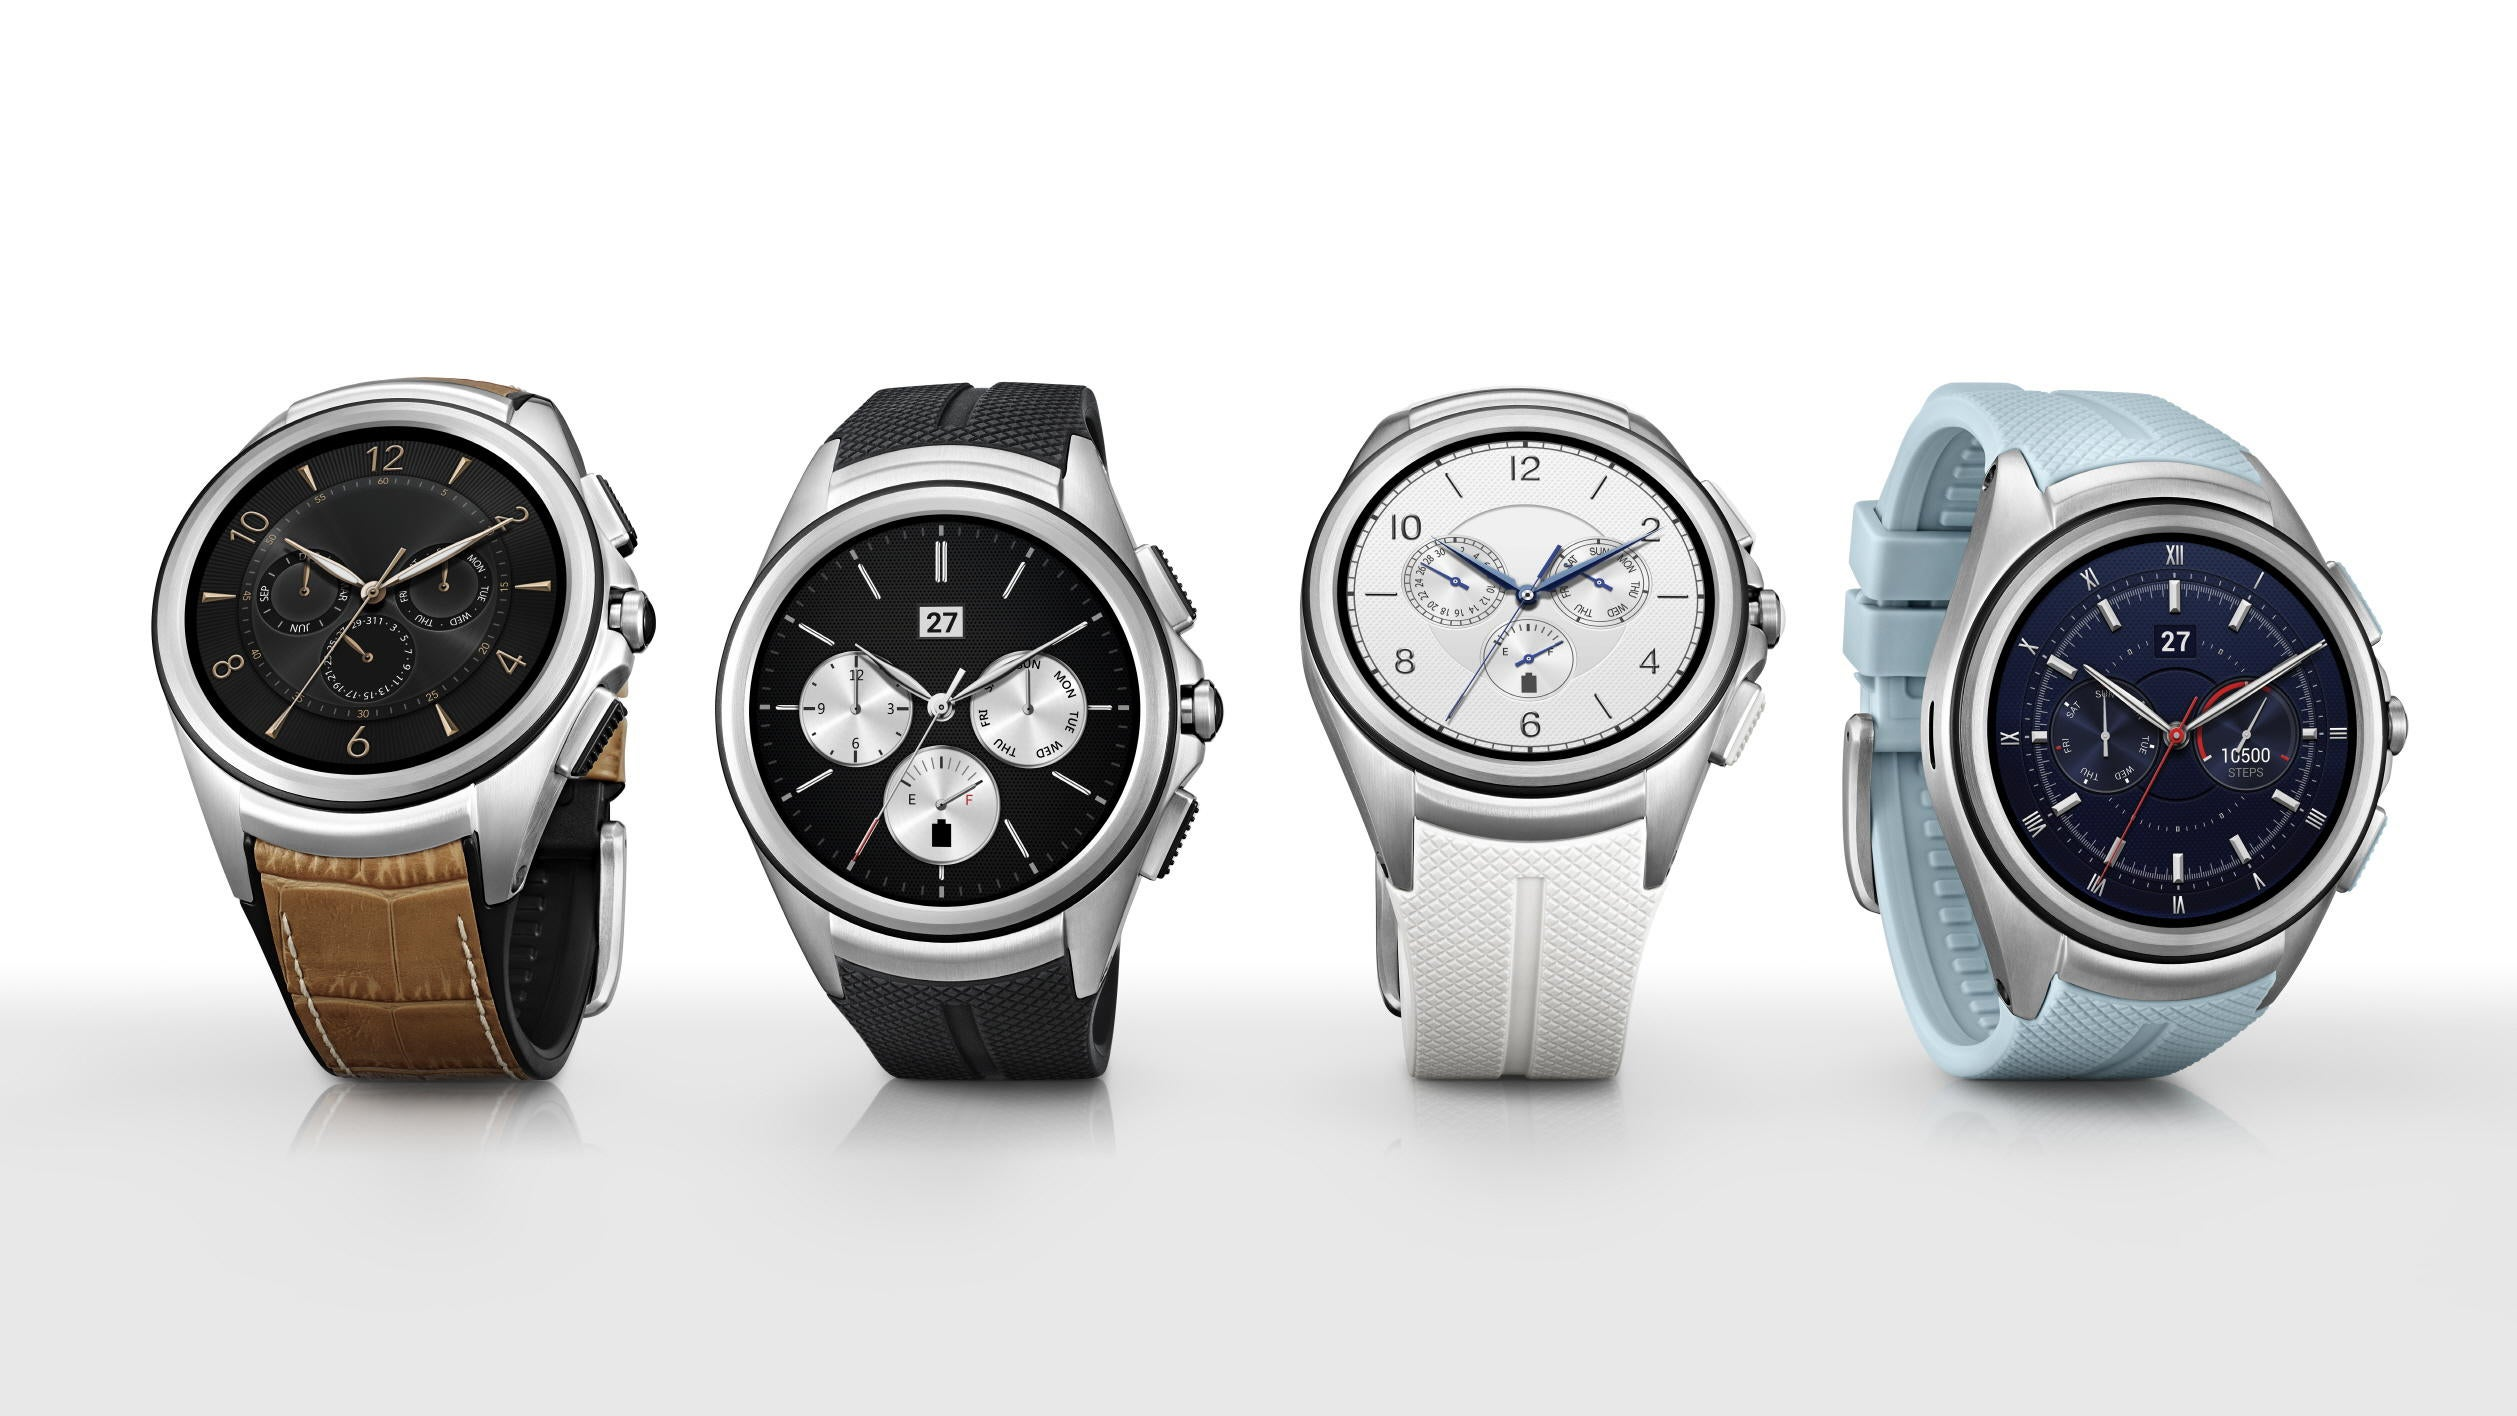 LG's Got a Shiny New Watch, and a Crazy Smartphone to Go With It